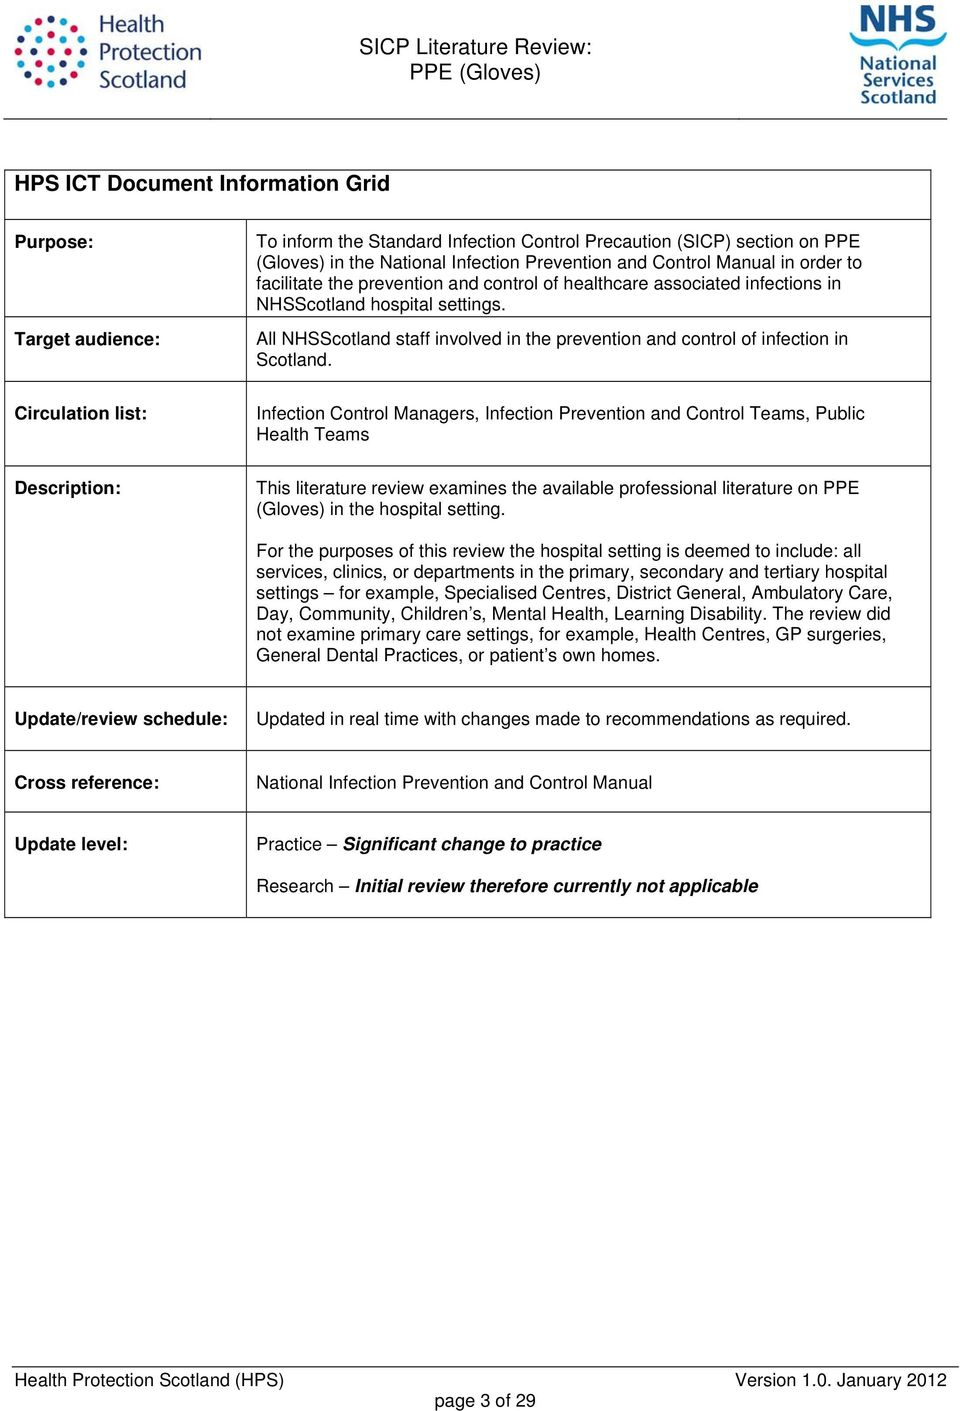 Standard Infection Control Precautions Literature Review Personal